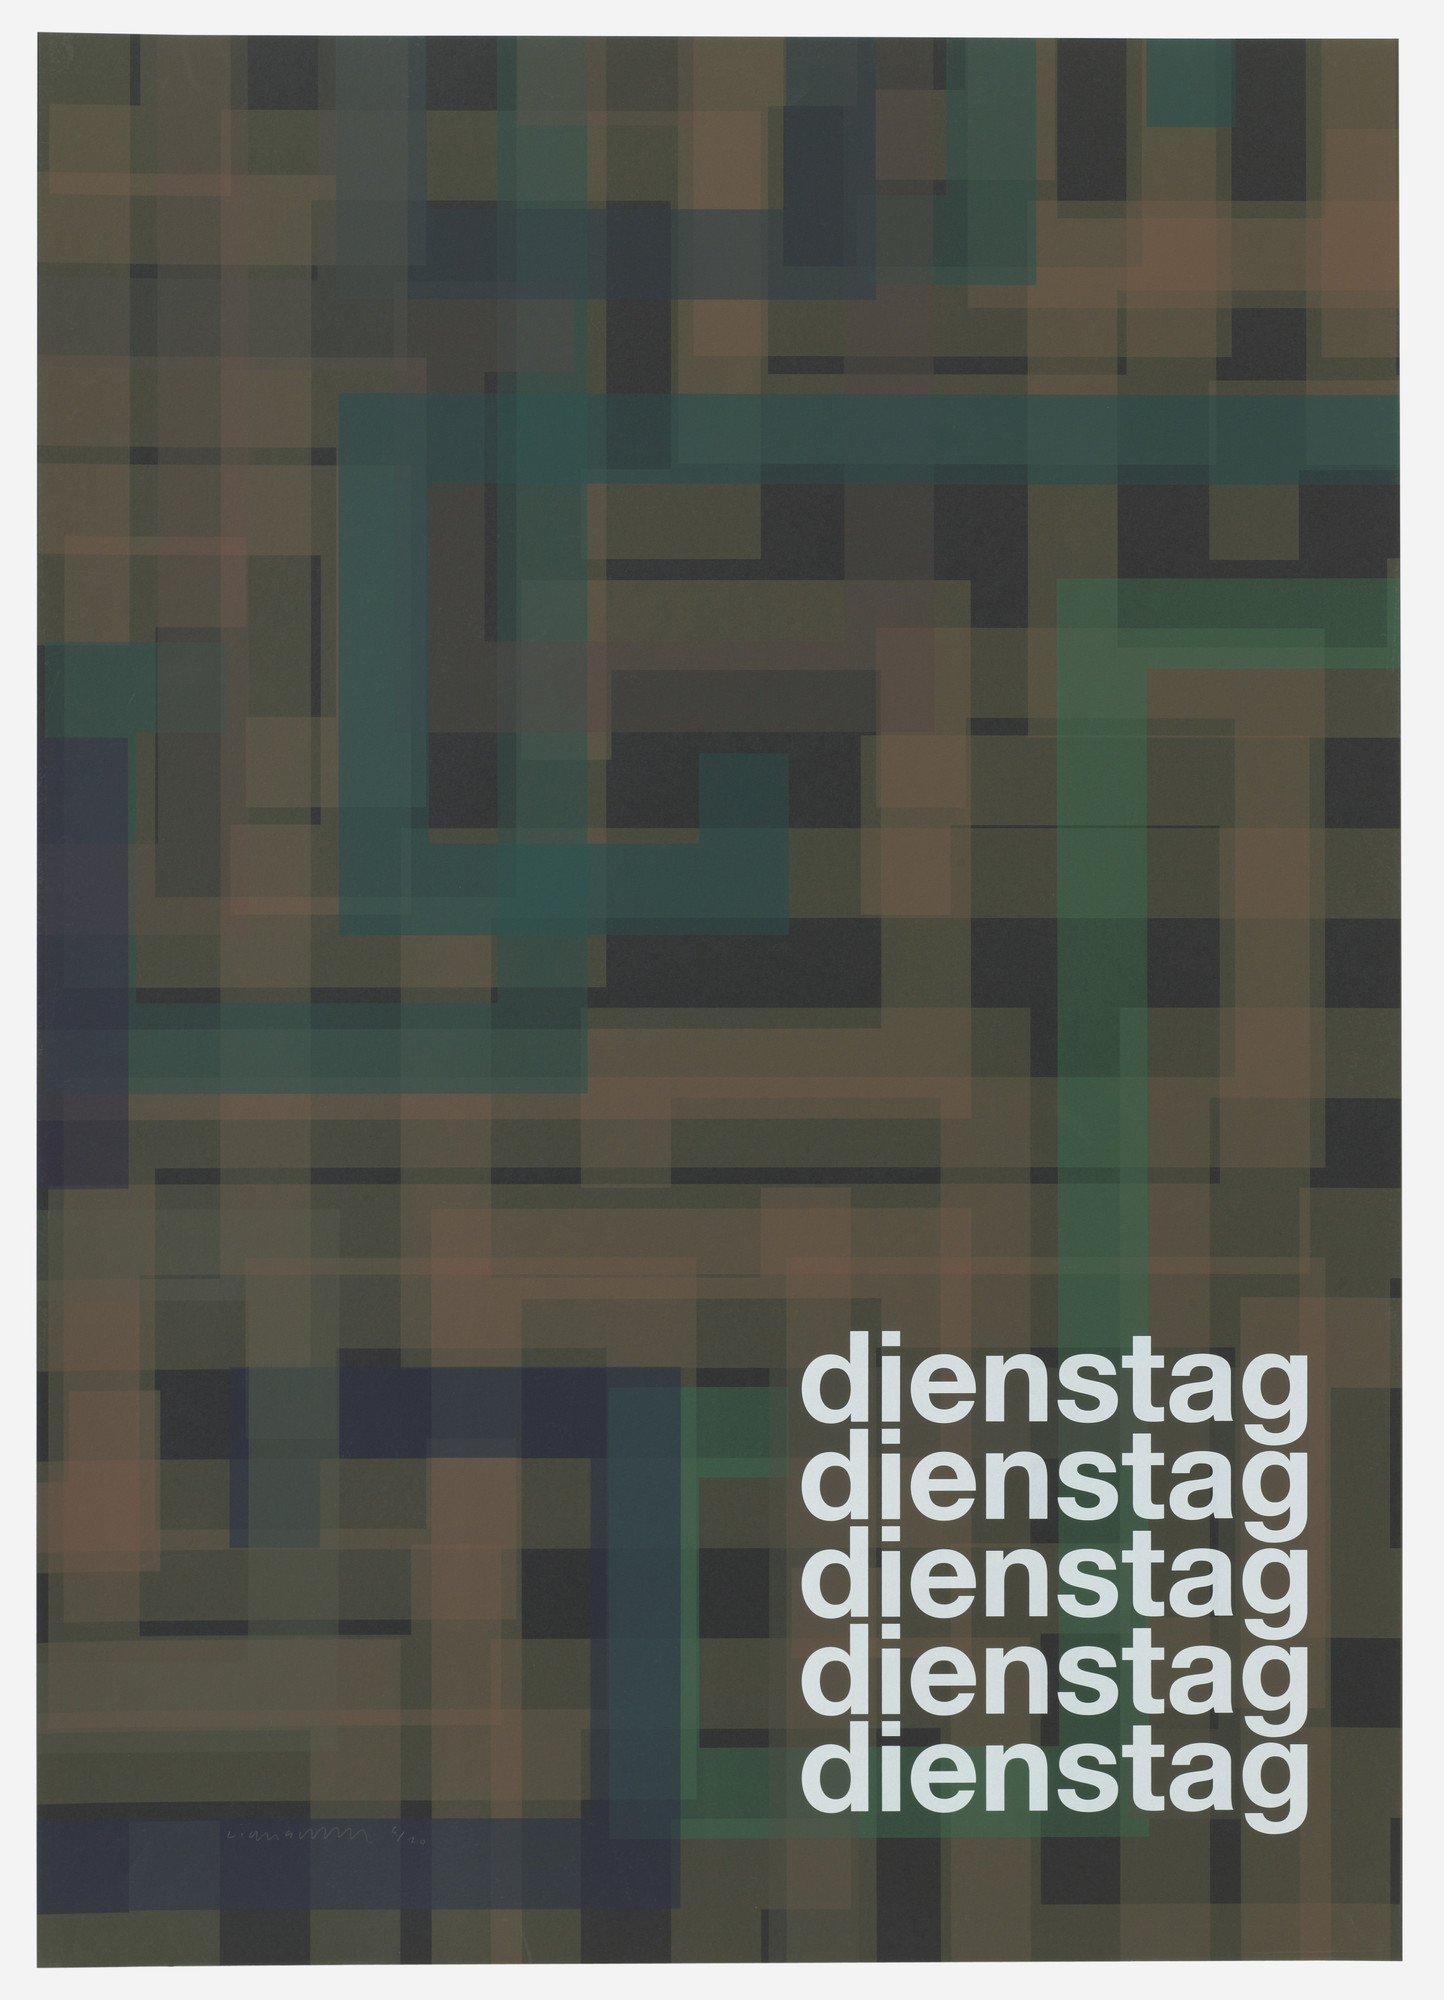 Liam Gillick. Dienstag (Tuesday) from Guide. 2004